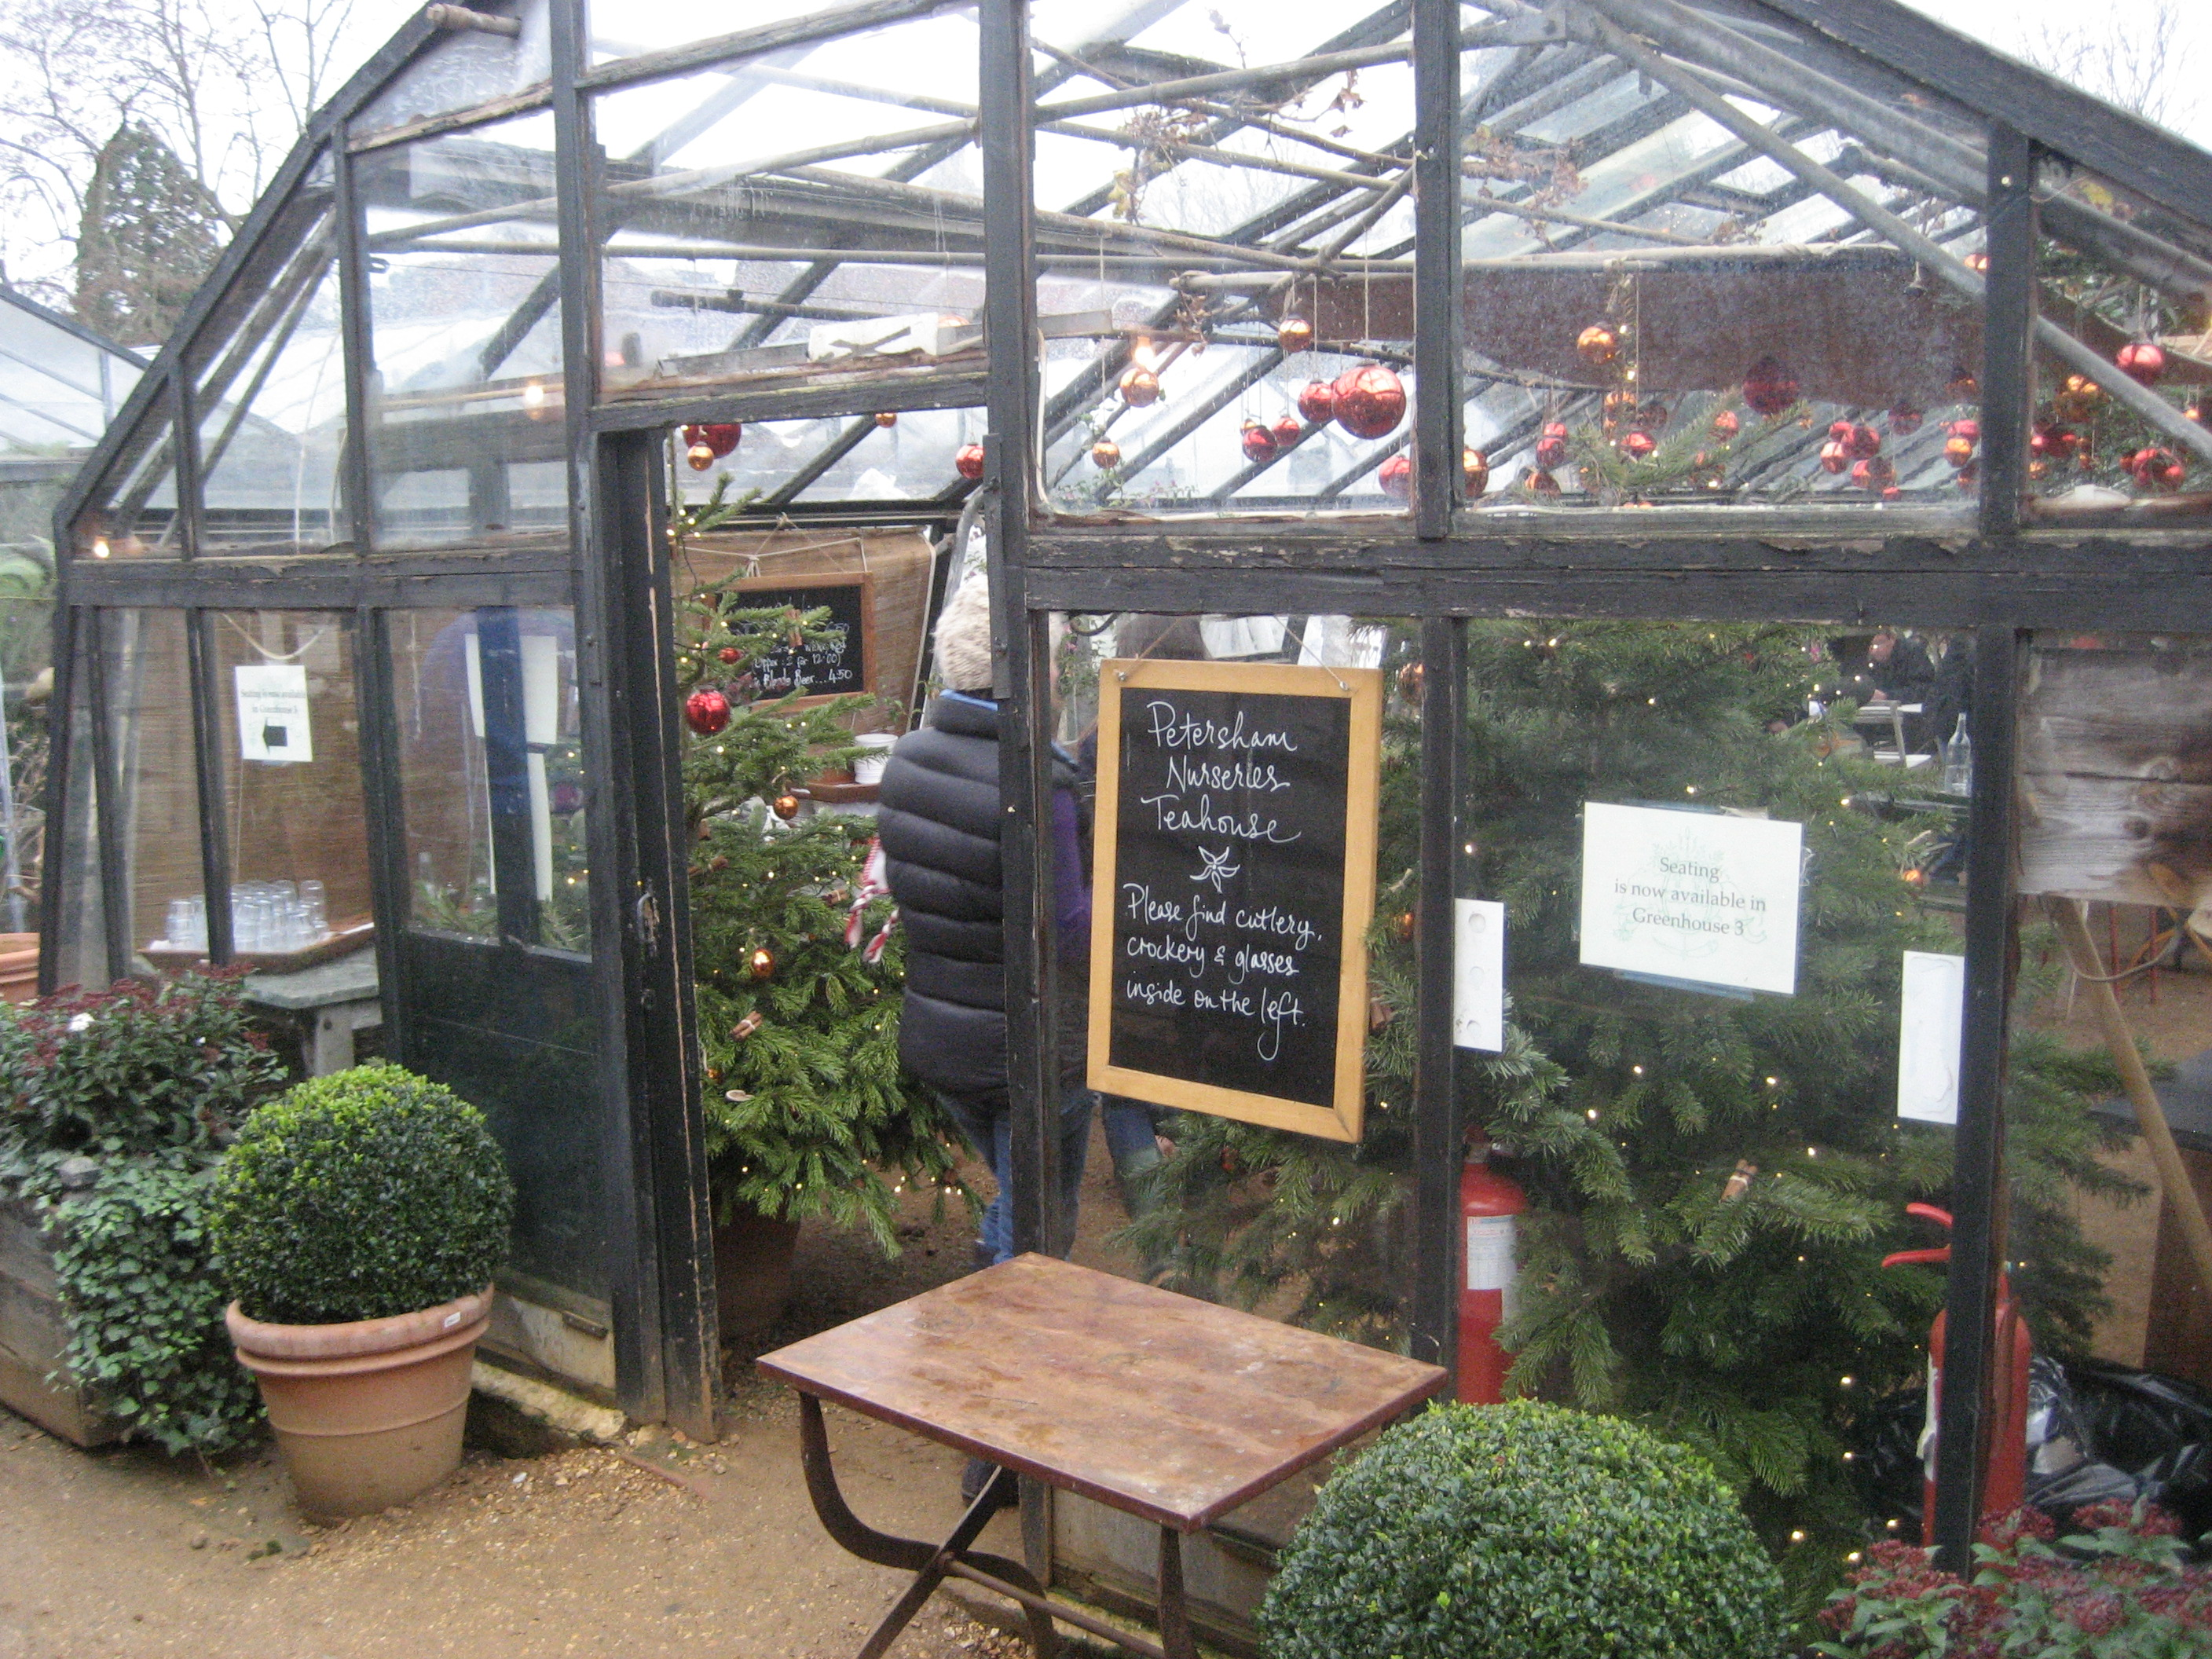 /images/petersham_nurseries_cafe.JPG